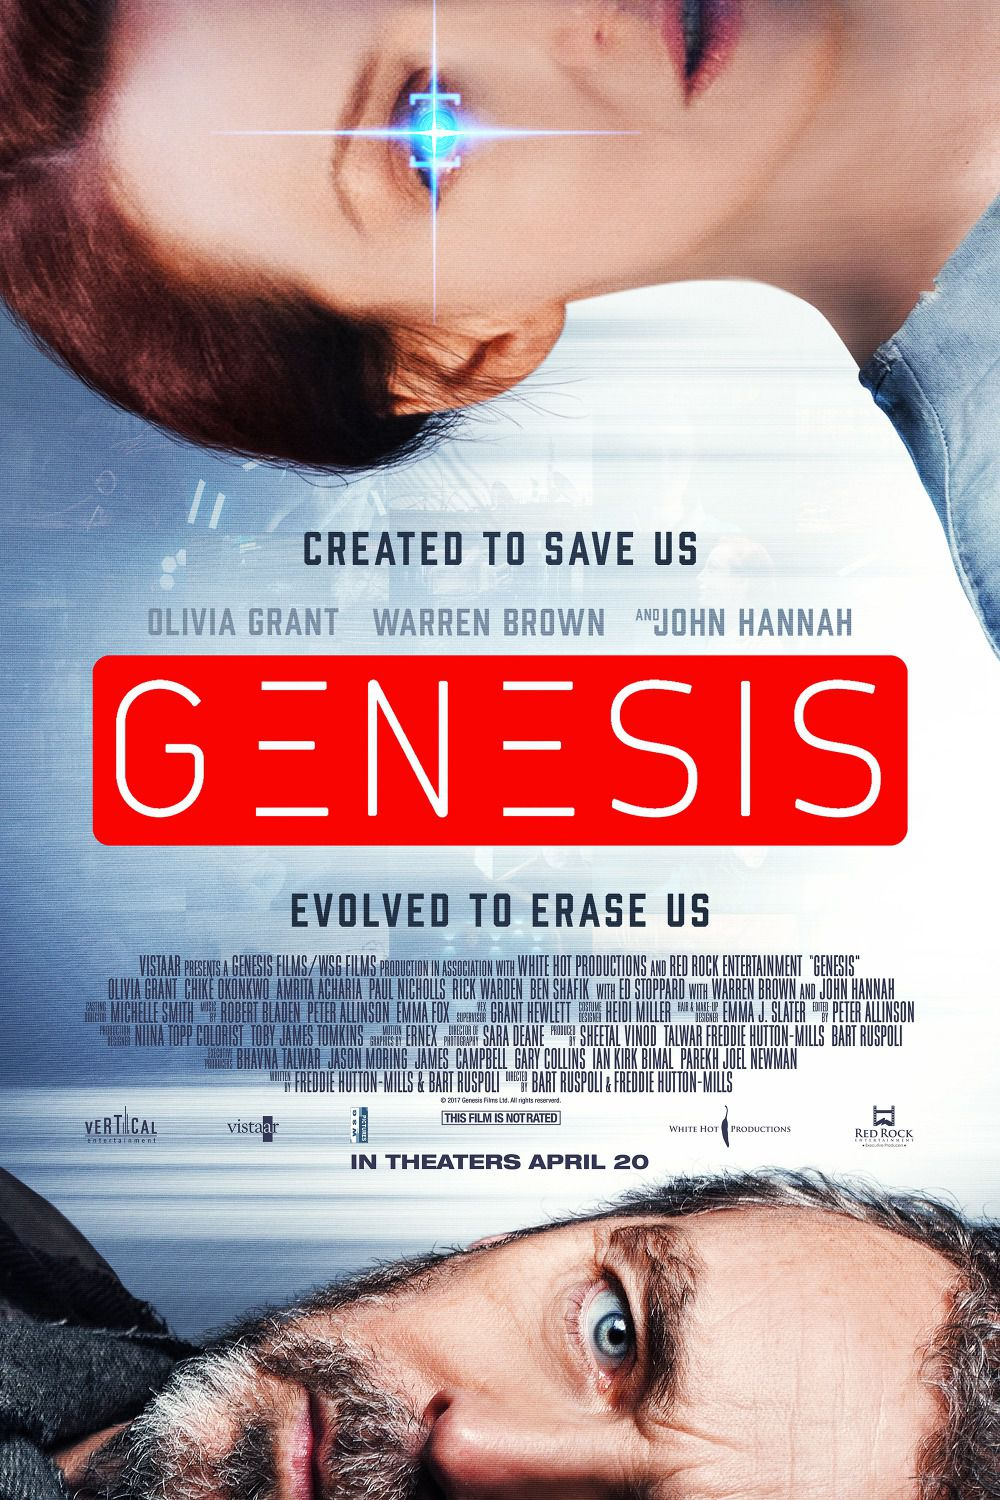 Genesis - Created to save us. Evolved to erase us - Cast: Olivia Grant, Warren Brown, John Hannah - AI Robot scifi film poster